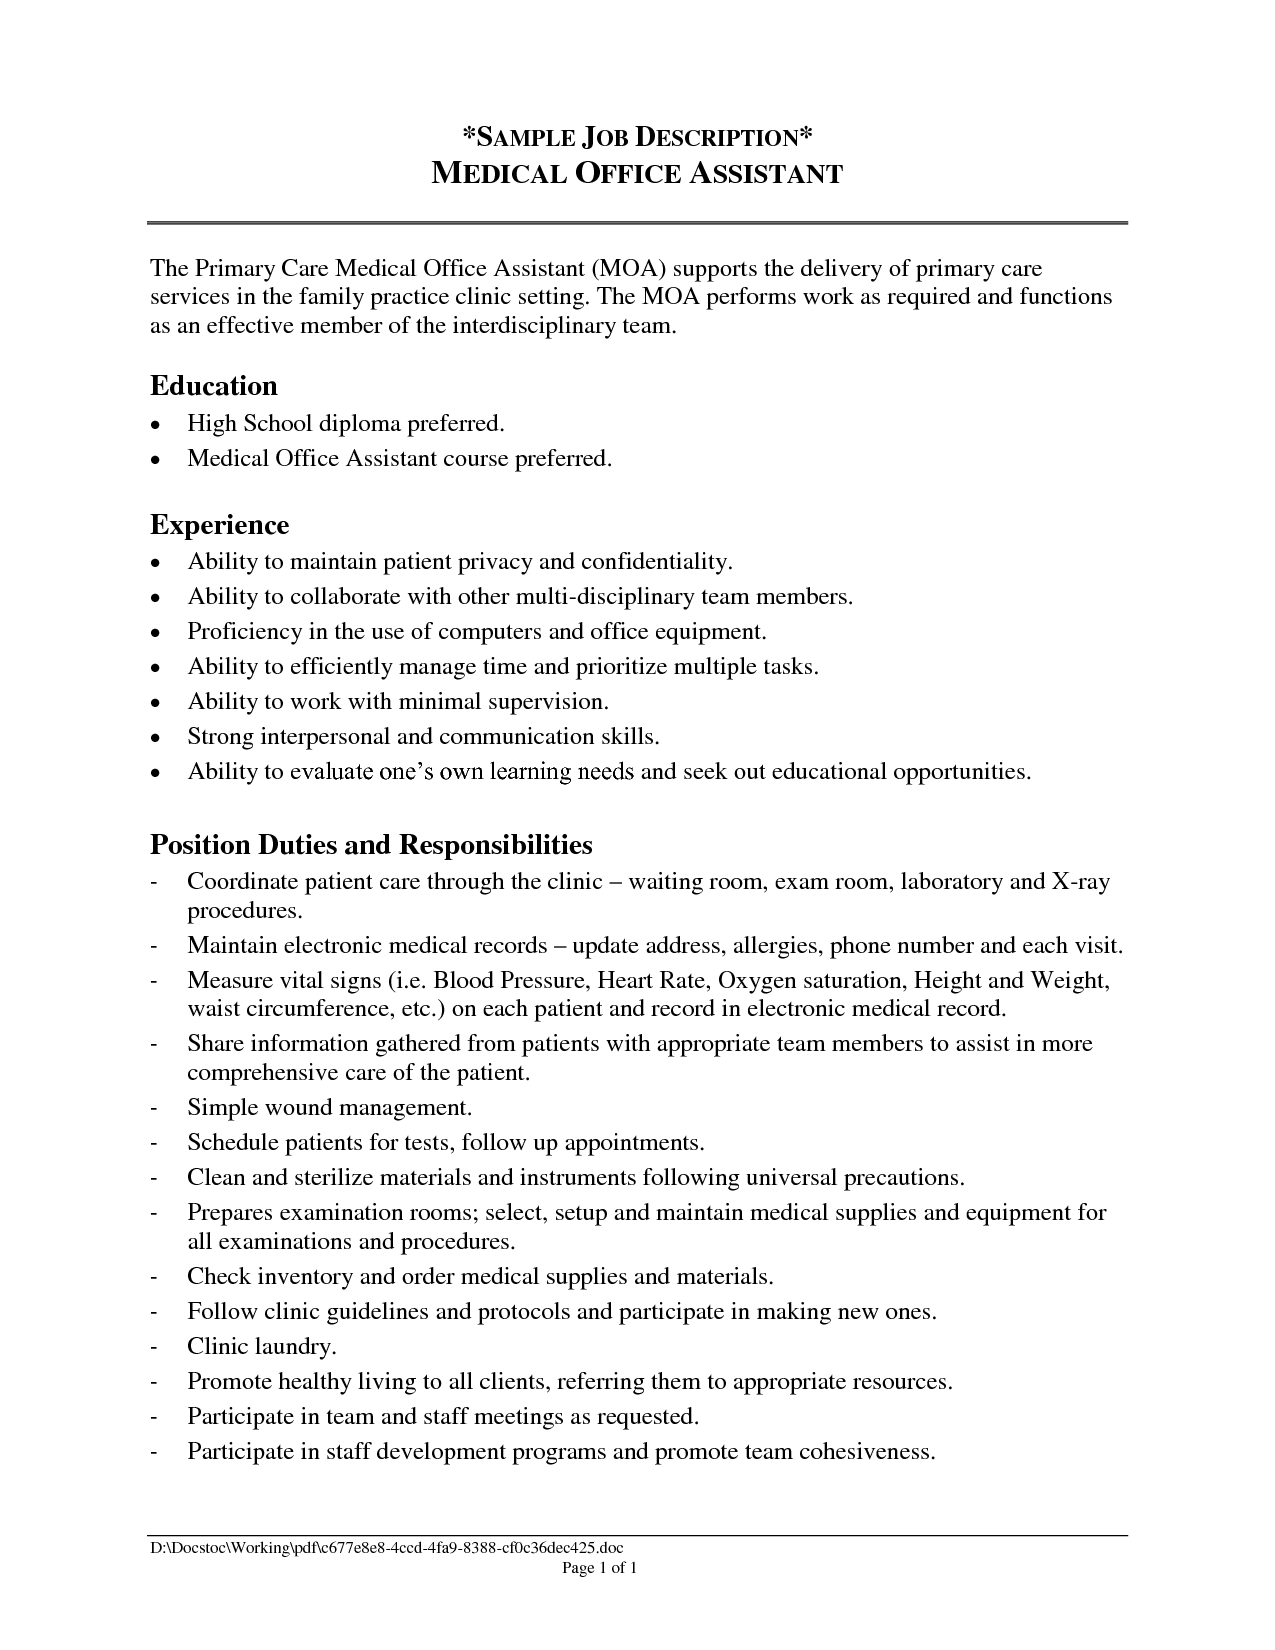 Medical job resume